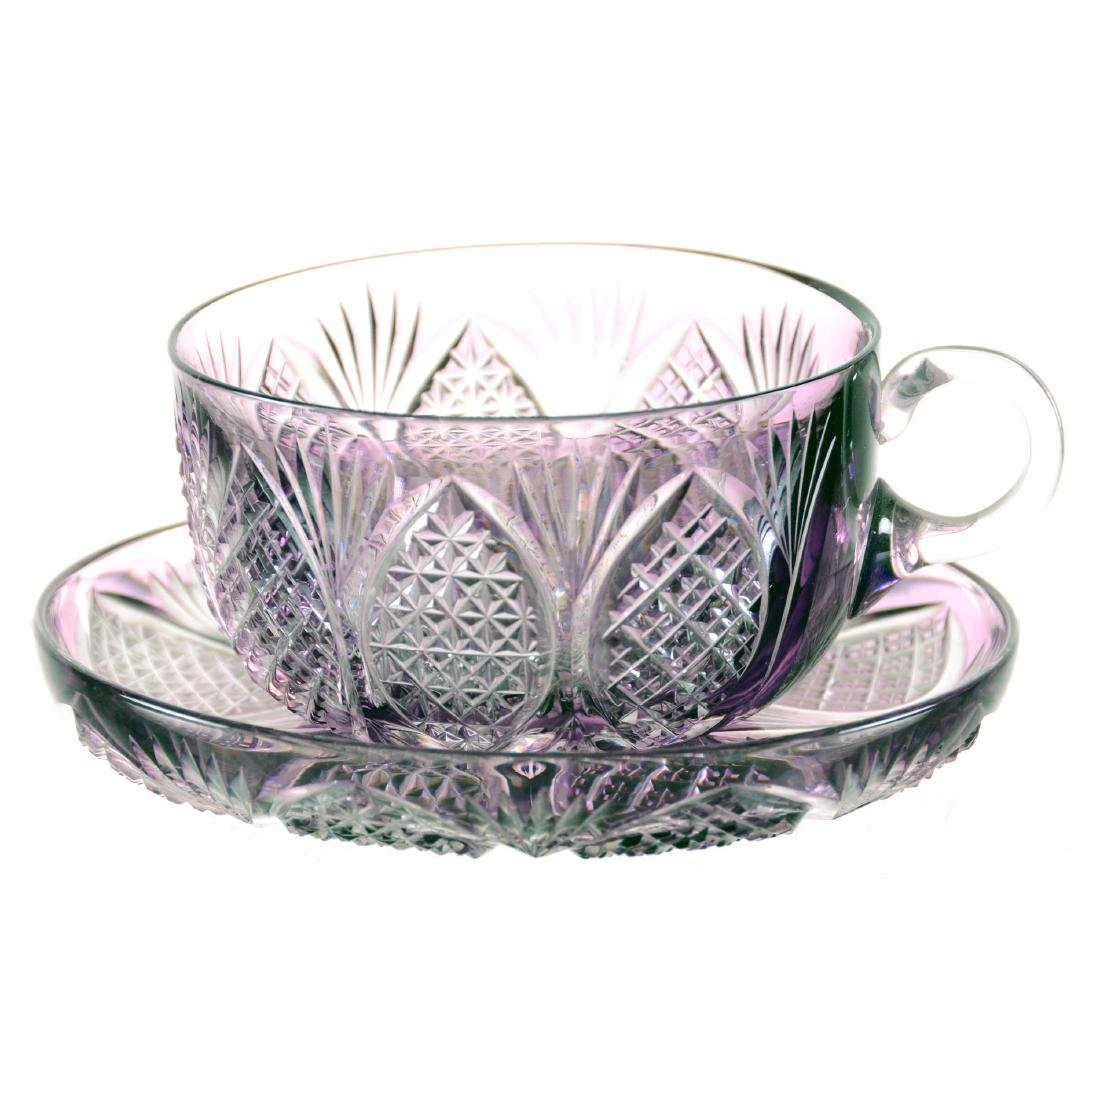 """Cup and Saucer - 2"""" X 4.5"""" - Amethyst Cut to Clear"""